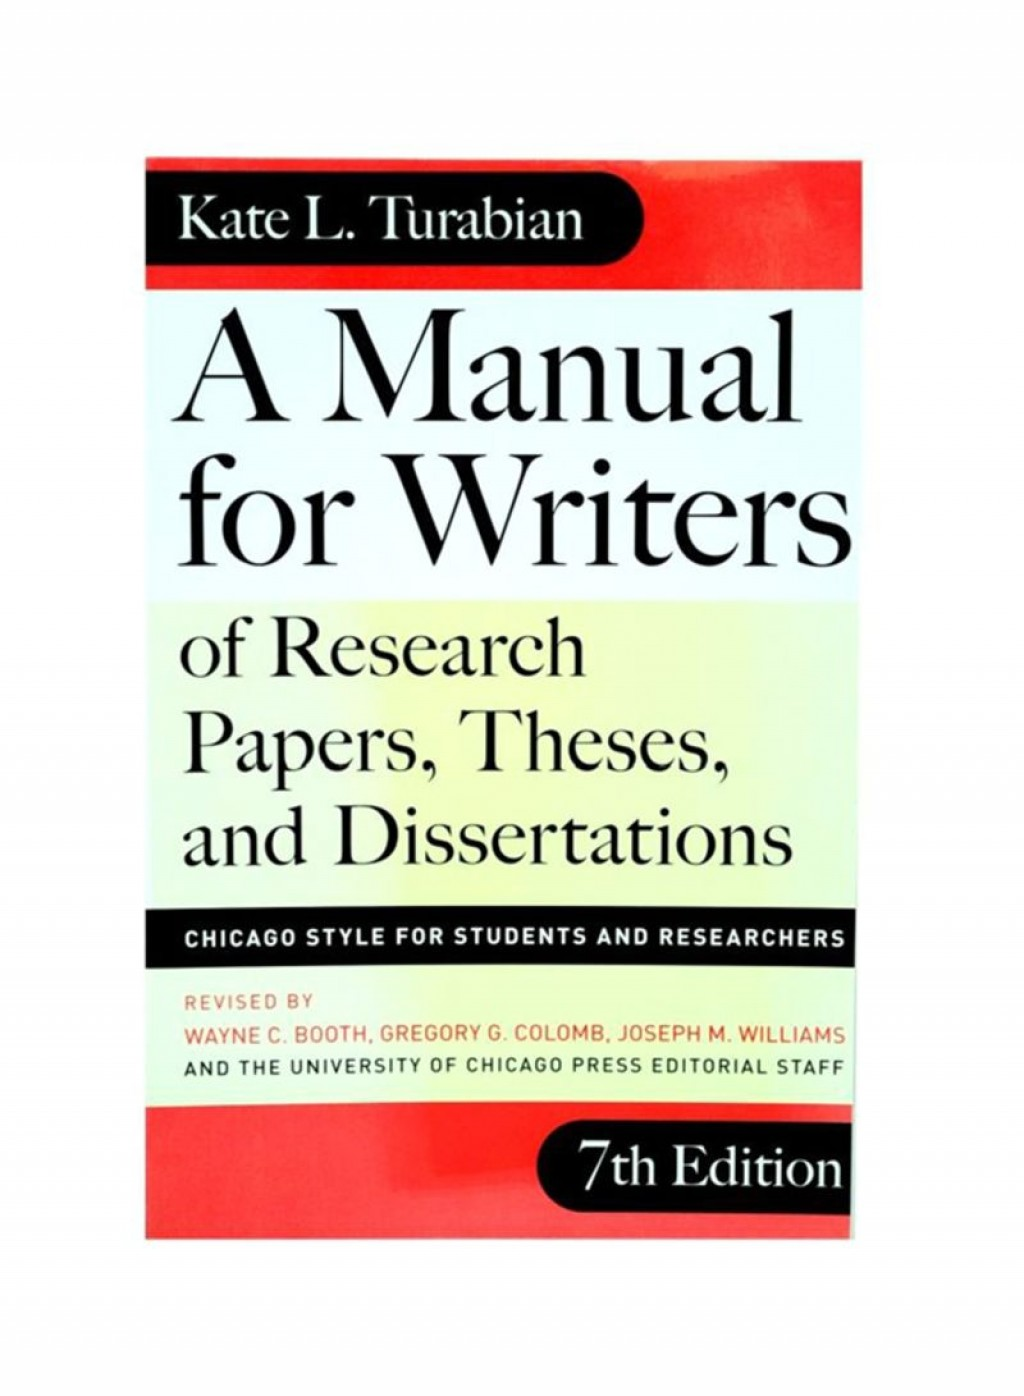 021 Research Paper N21270079a 1 Manual For Writers Of Papers Theses And Magnificent Dissertations A Amazon 9th Edition Pdf 8th 13 Large